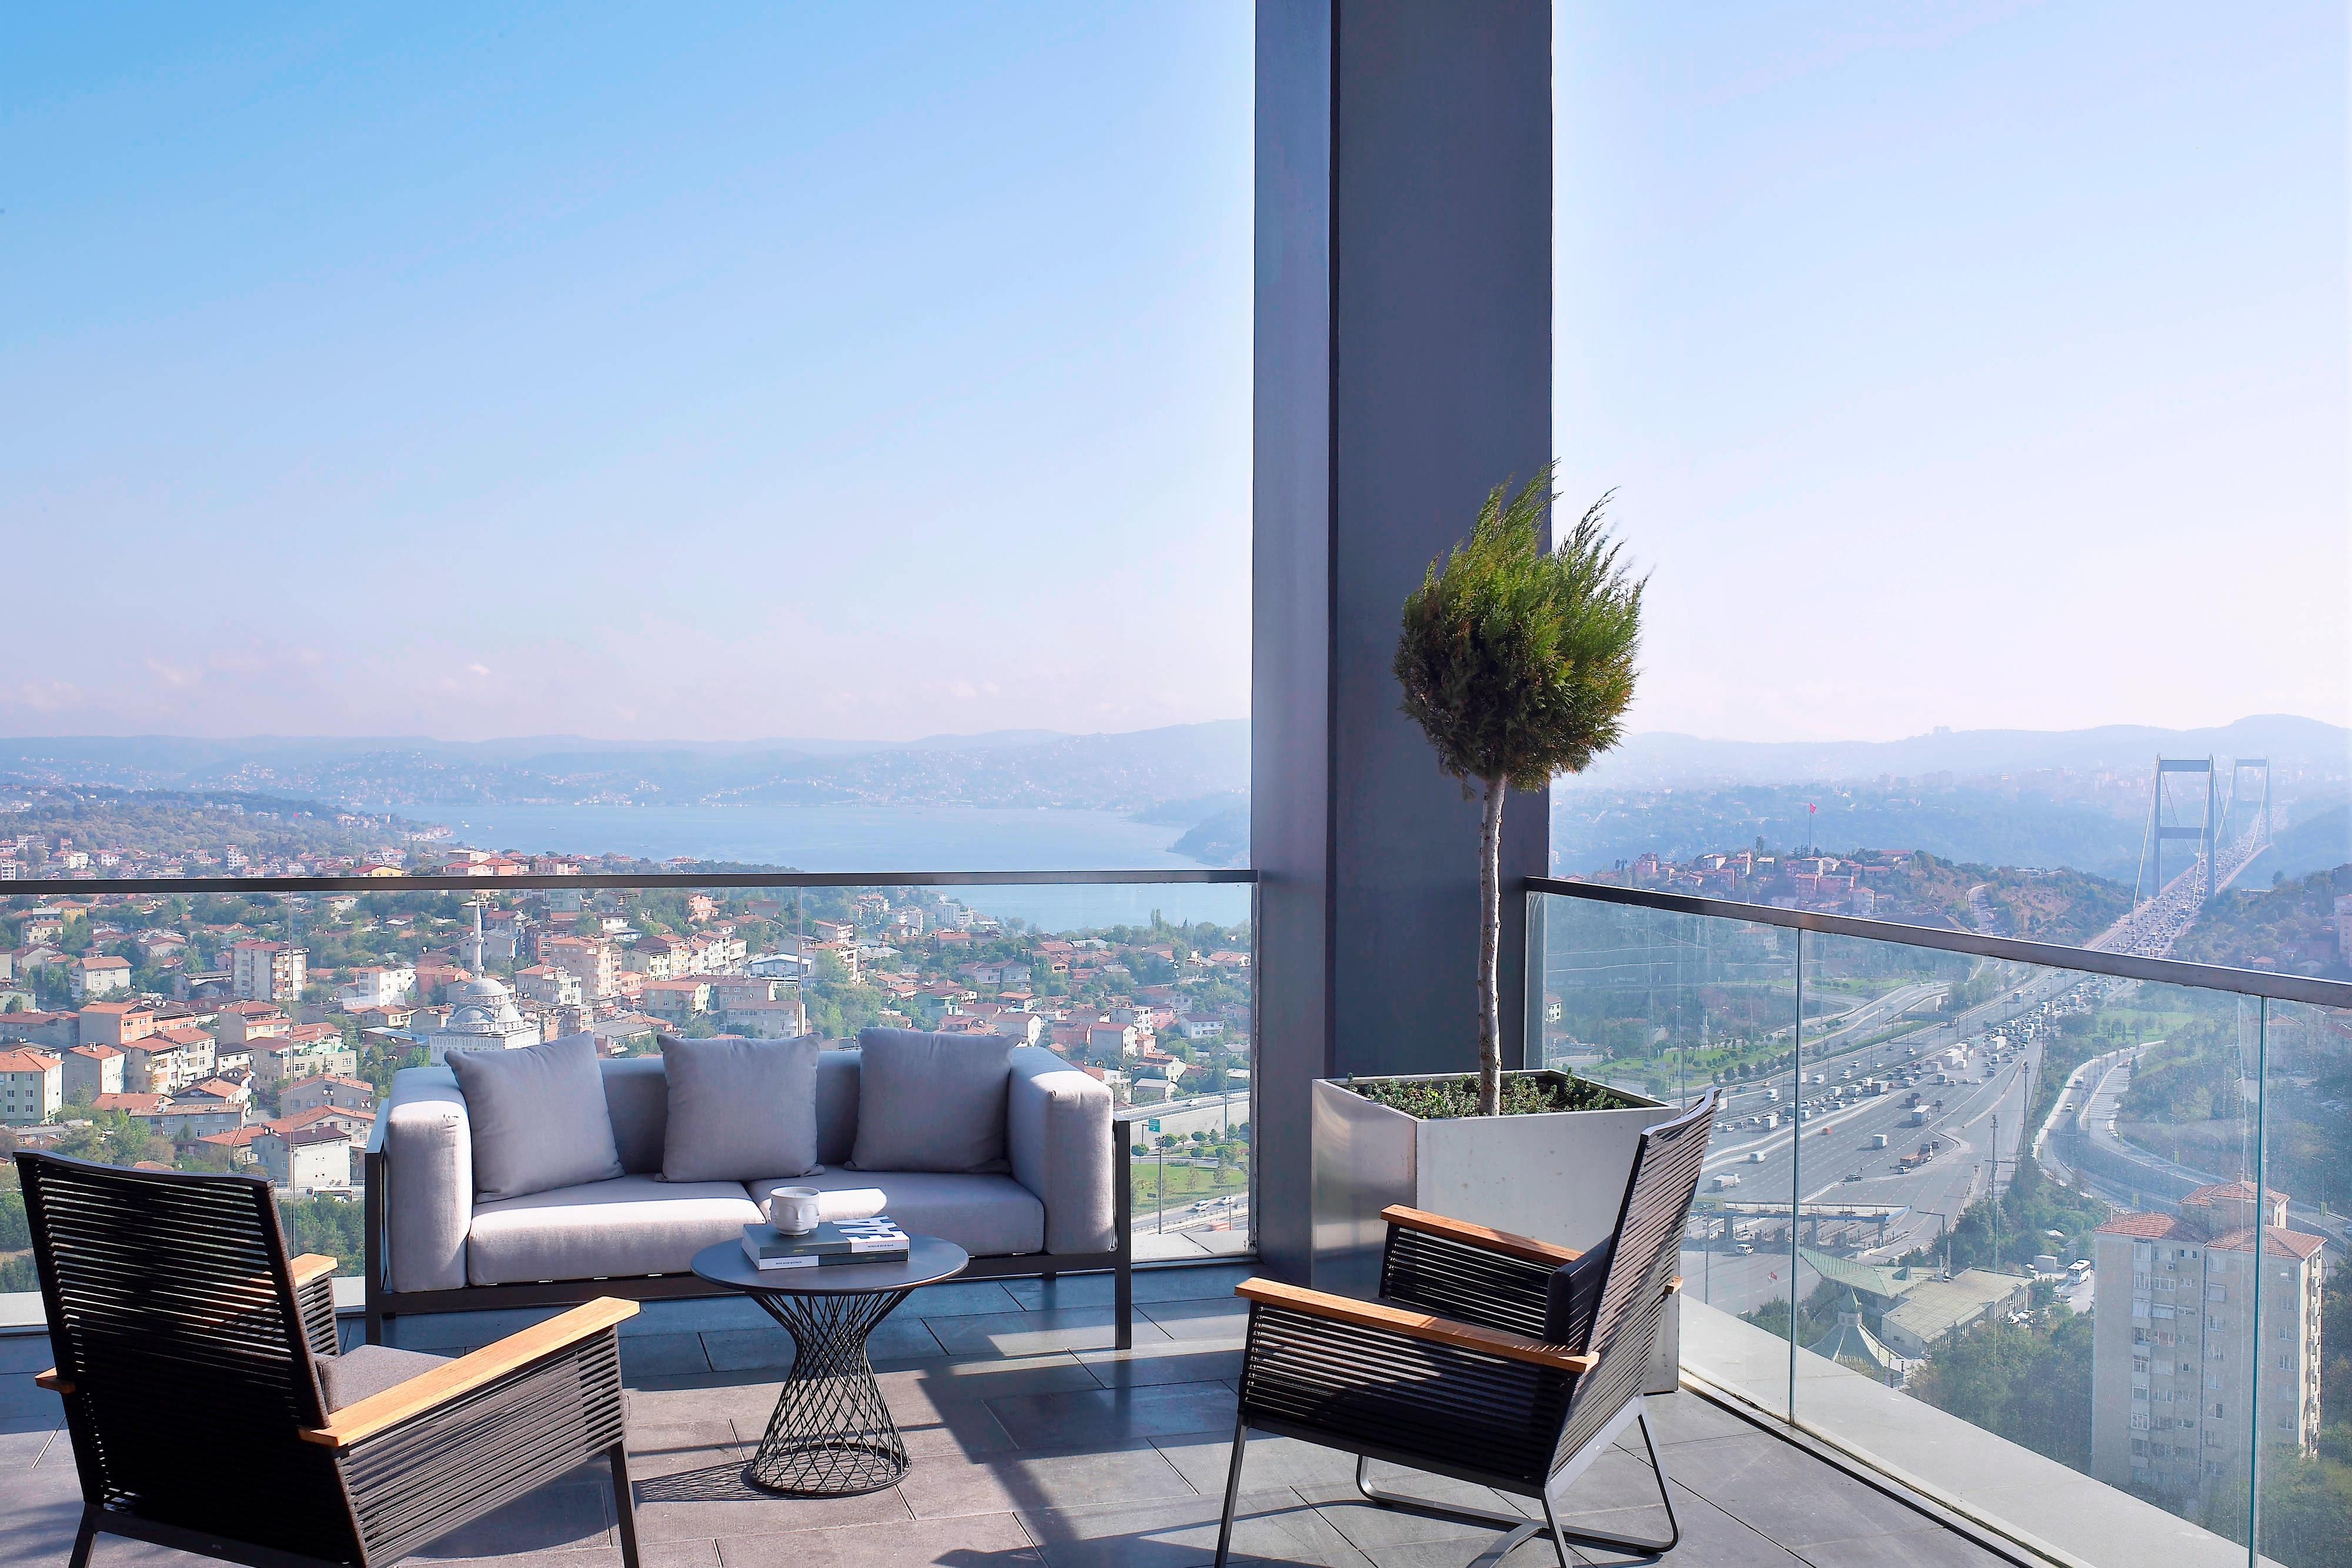 Presidential Suite - Terrace with Bosphrous View